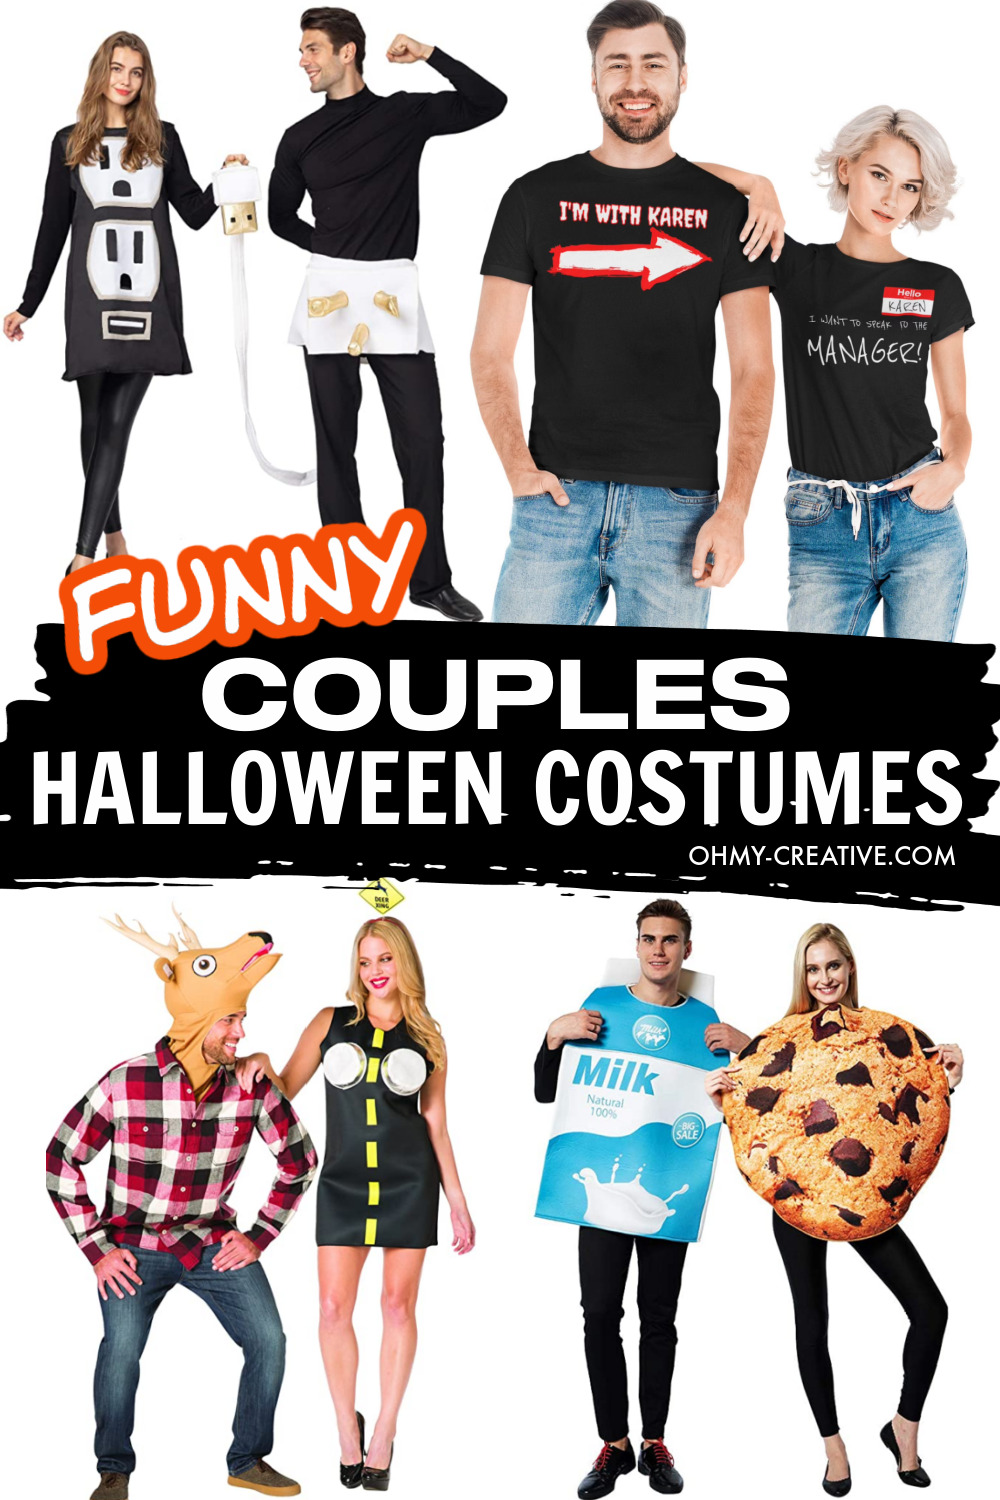 A collage of funny Halloween costumes for couples including milk and cookies costume, plug and socket costume, deer in head lights costume and more!